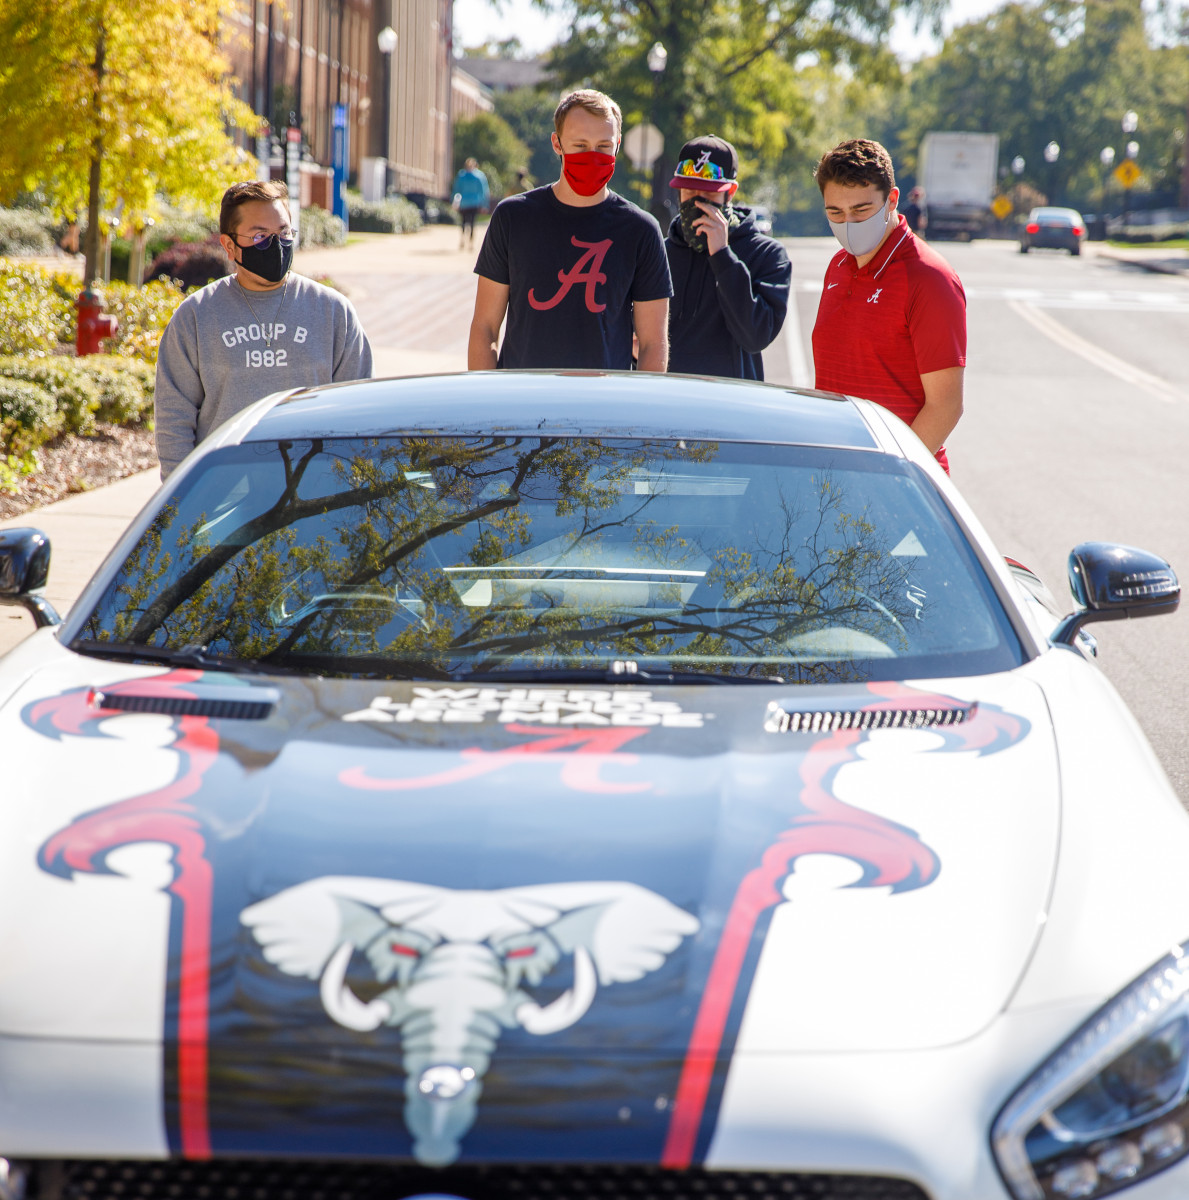 4 people outside looking at a UA themed race car